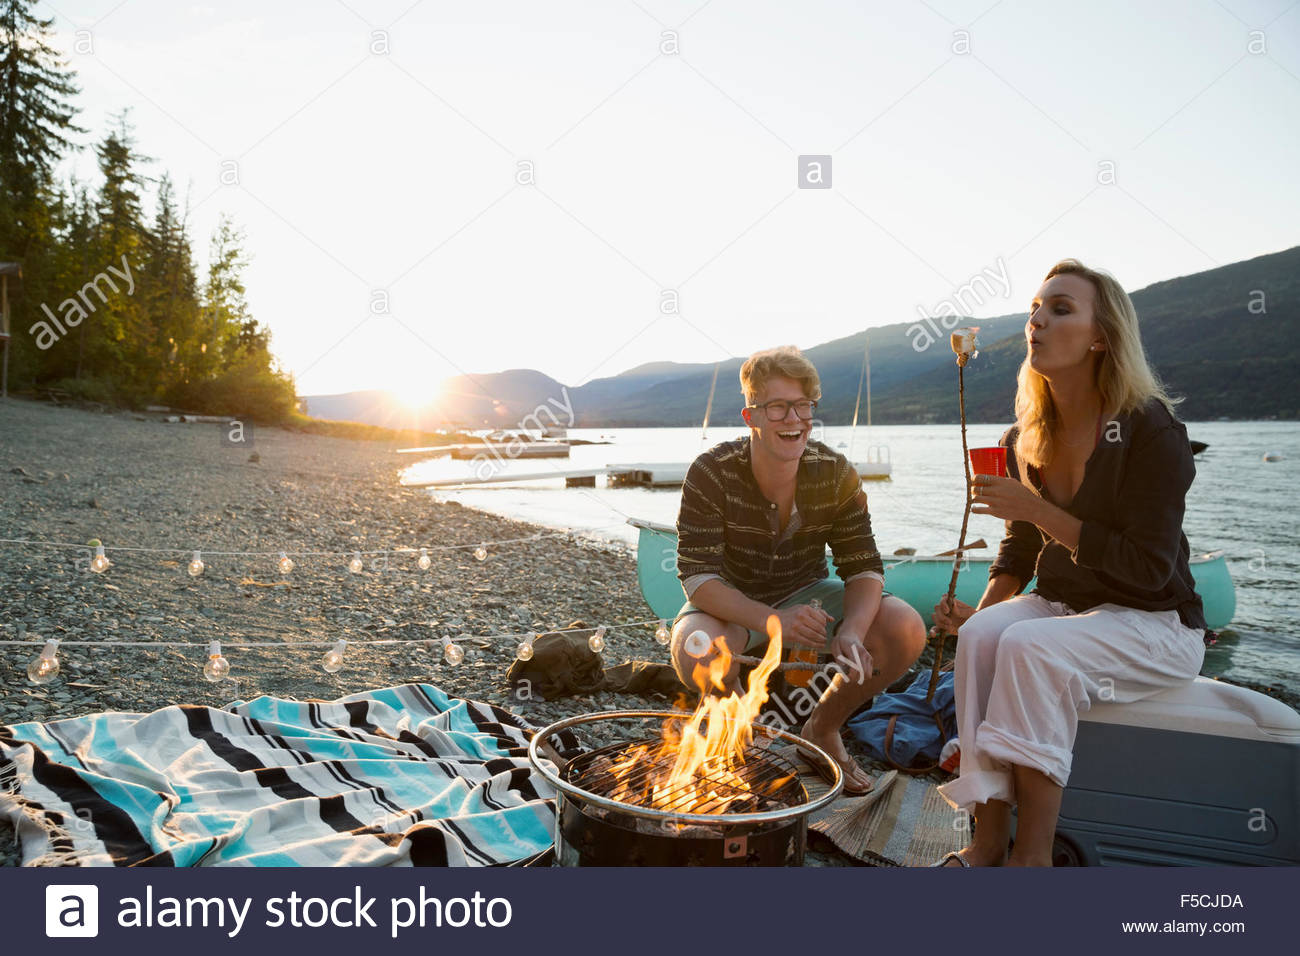 Young couple roasting marshmallows at lakeside campfire - Stock Image